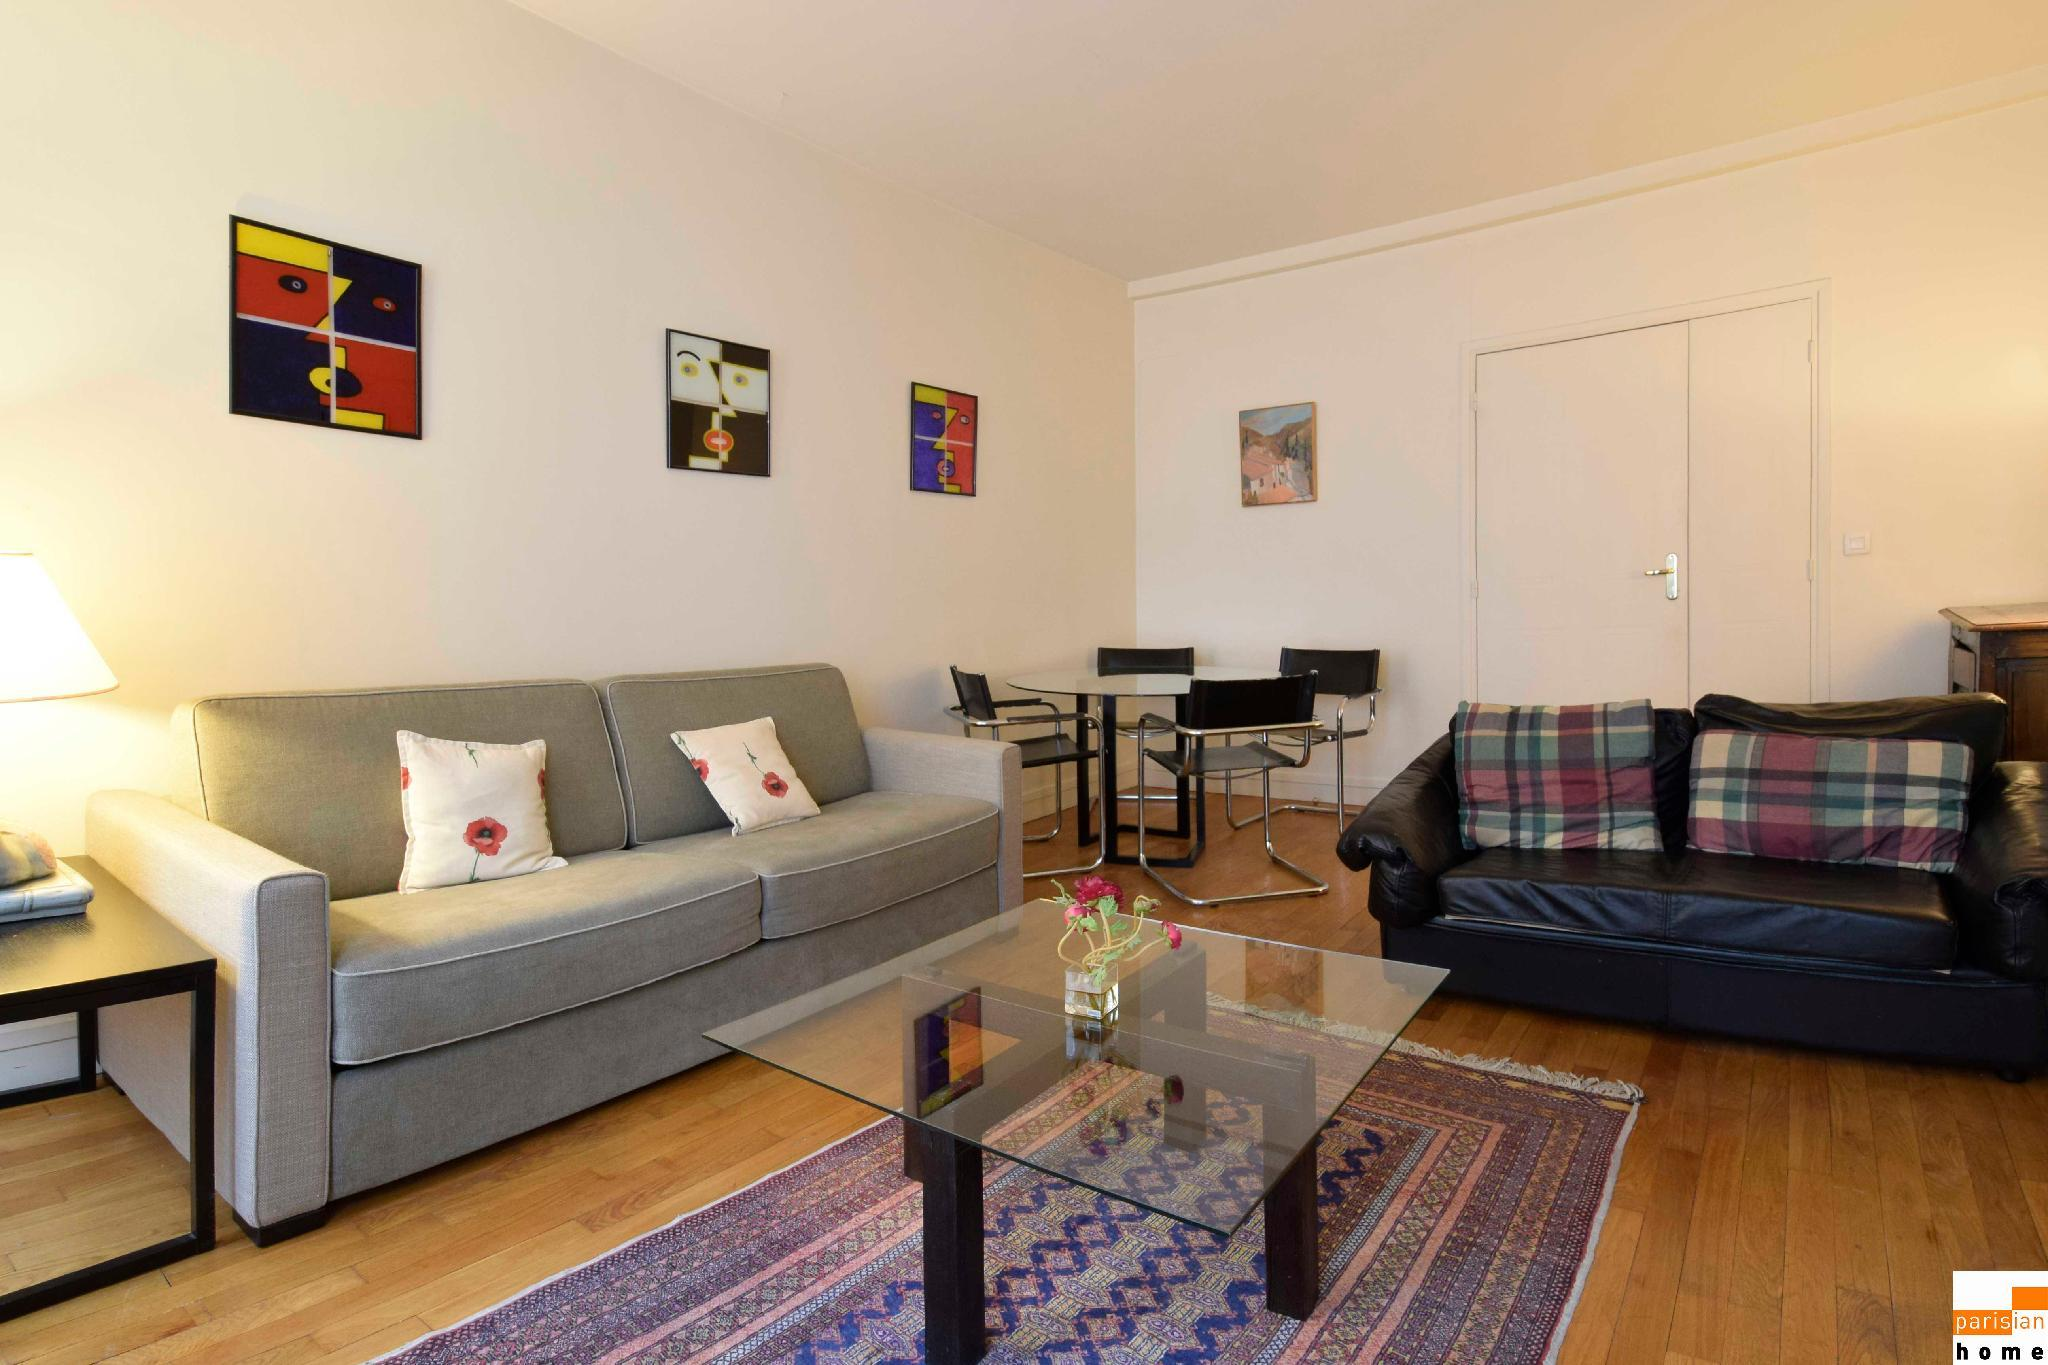 102140 - Charming apartment for 4 people near the Opera